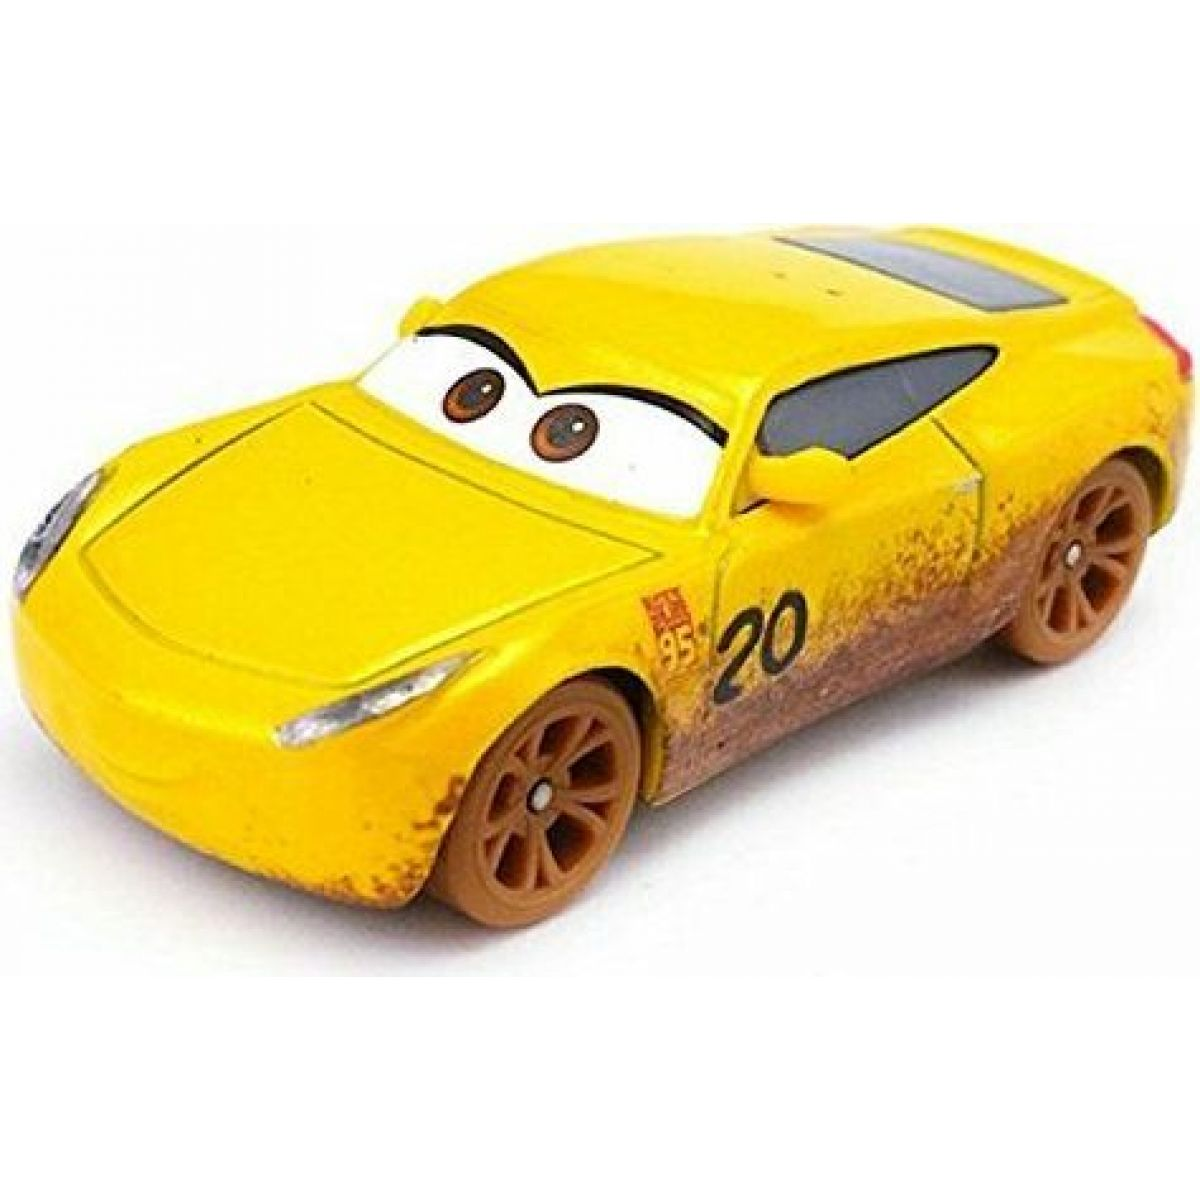 Mattel Cars 3 Auta Cruz Ramirez as Frances Betline